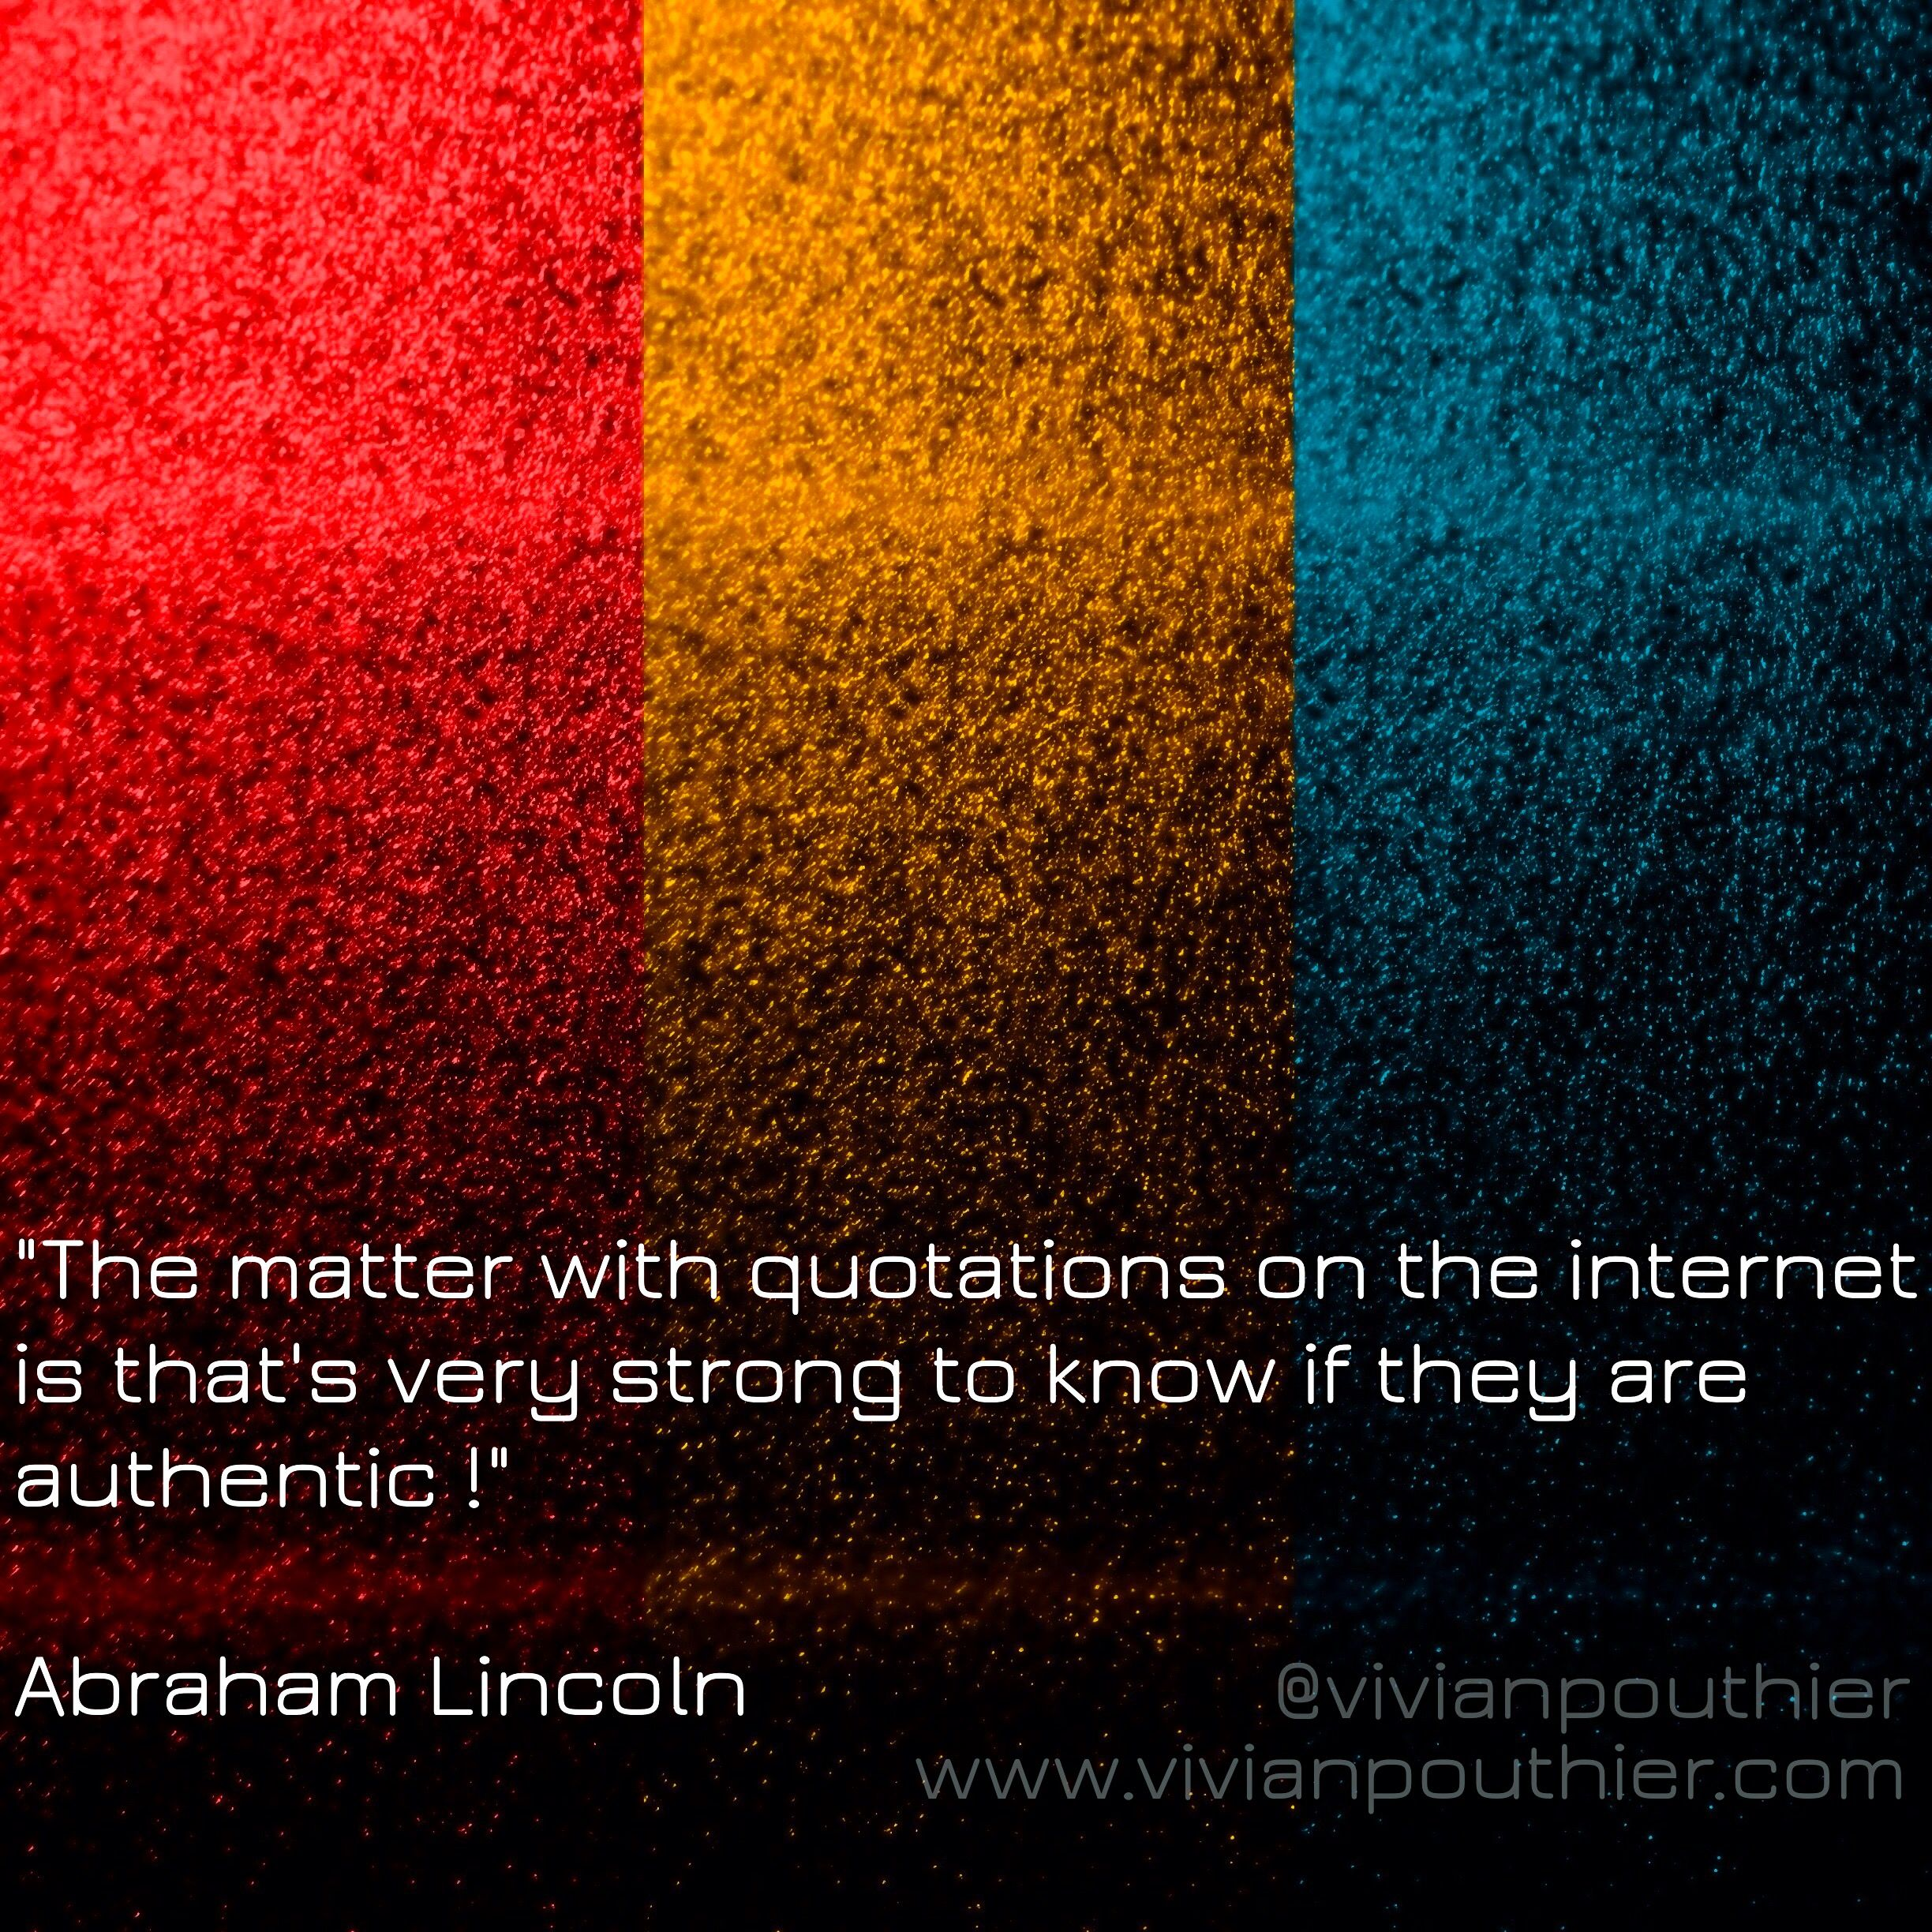 """""""The matter with quotations on internet is that's very hard to know if they are authentic"""" - Abraham Lincoln ツ"""